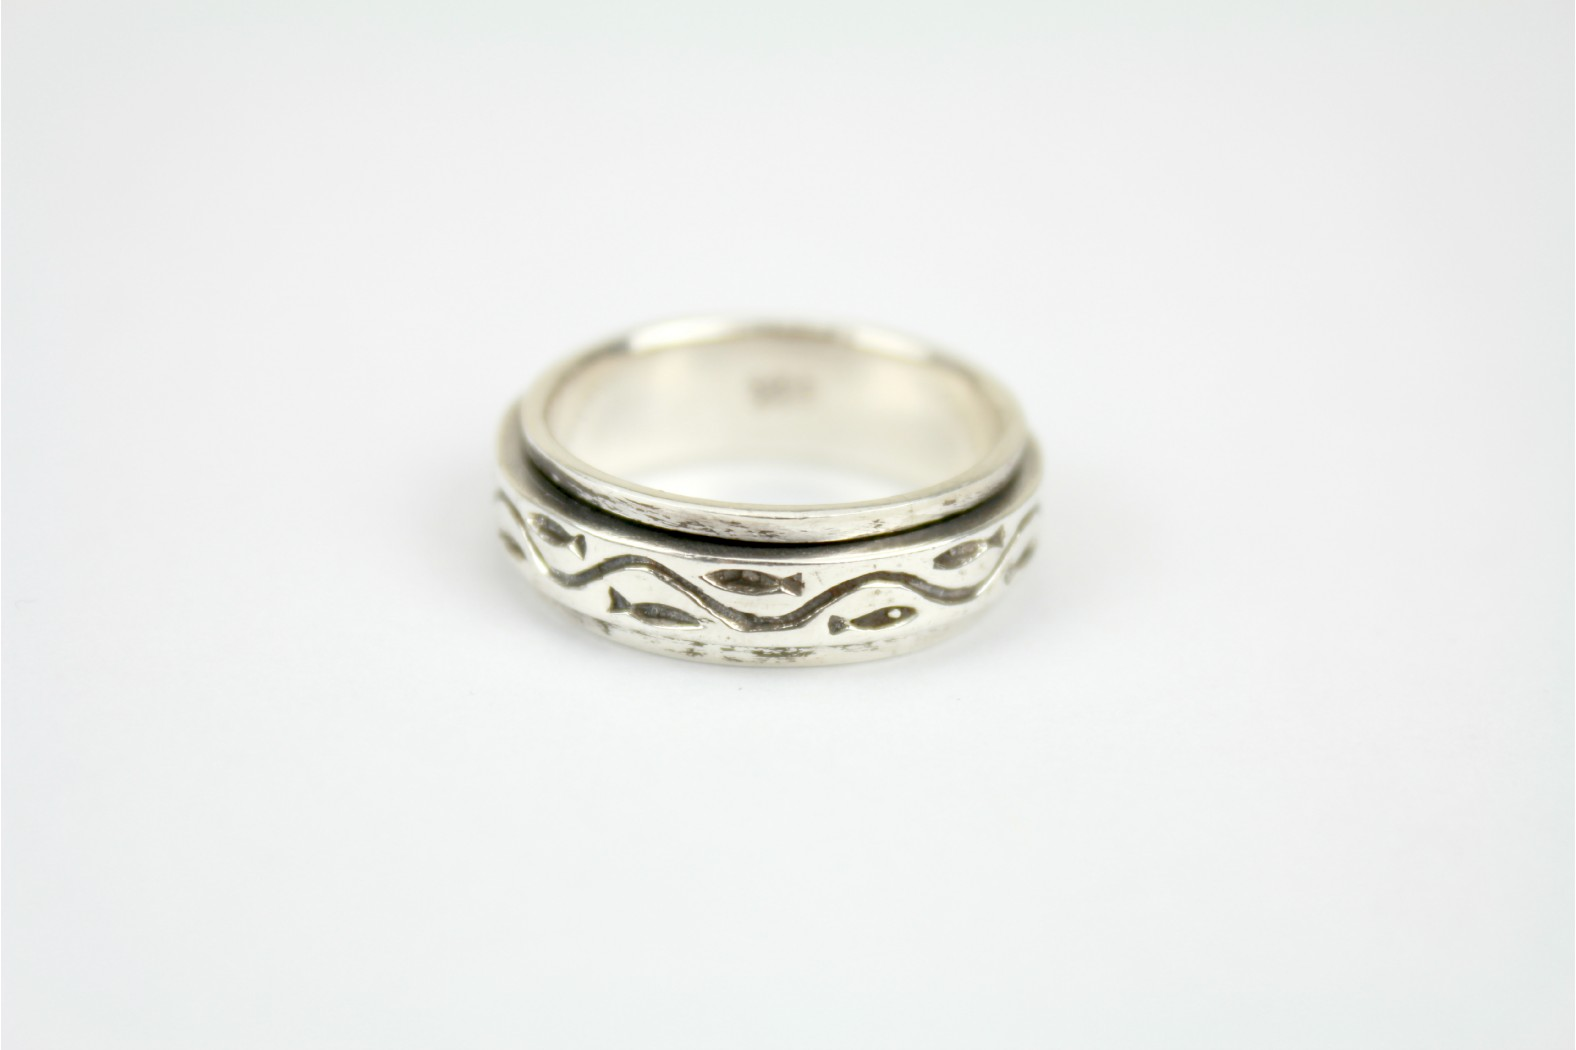 Spinner style band with wave design size 10 or T